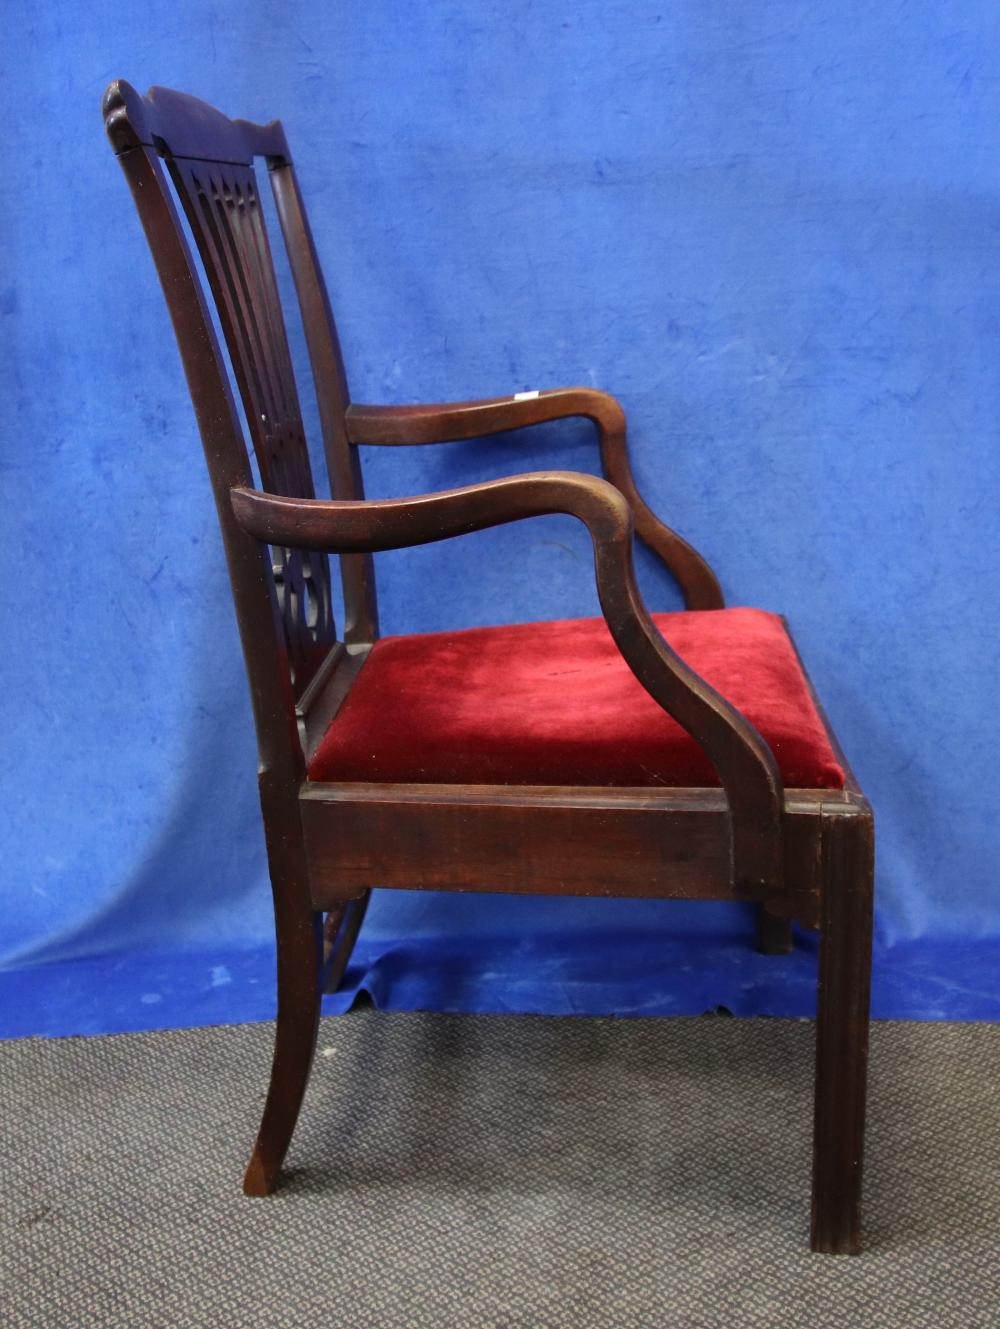 LATE 18TH/ EARLY 19TH CENTURY ENGLISH MAHOGANY DESK/CARVER CHAIR, FRETWORK BACK, DROP IN SEAT, (REPAIRED BACK LEGS)